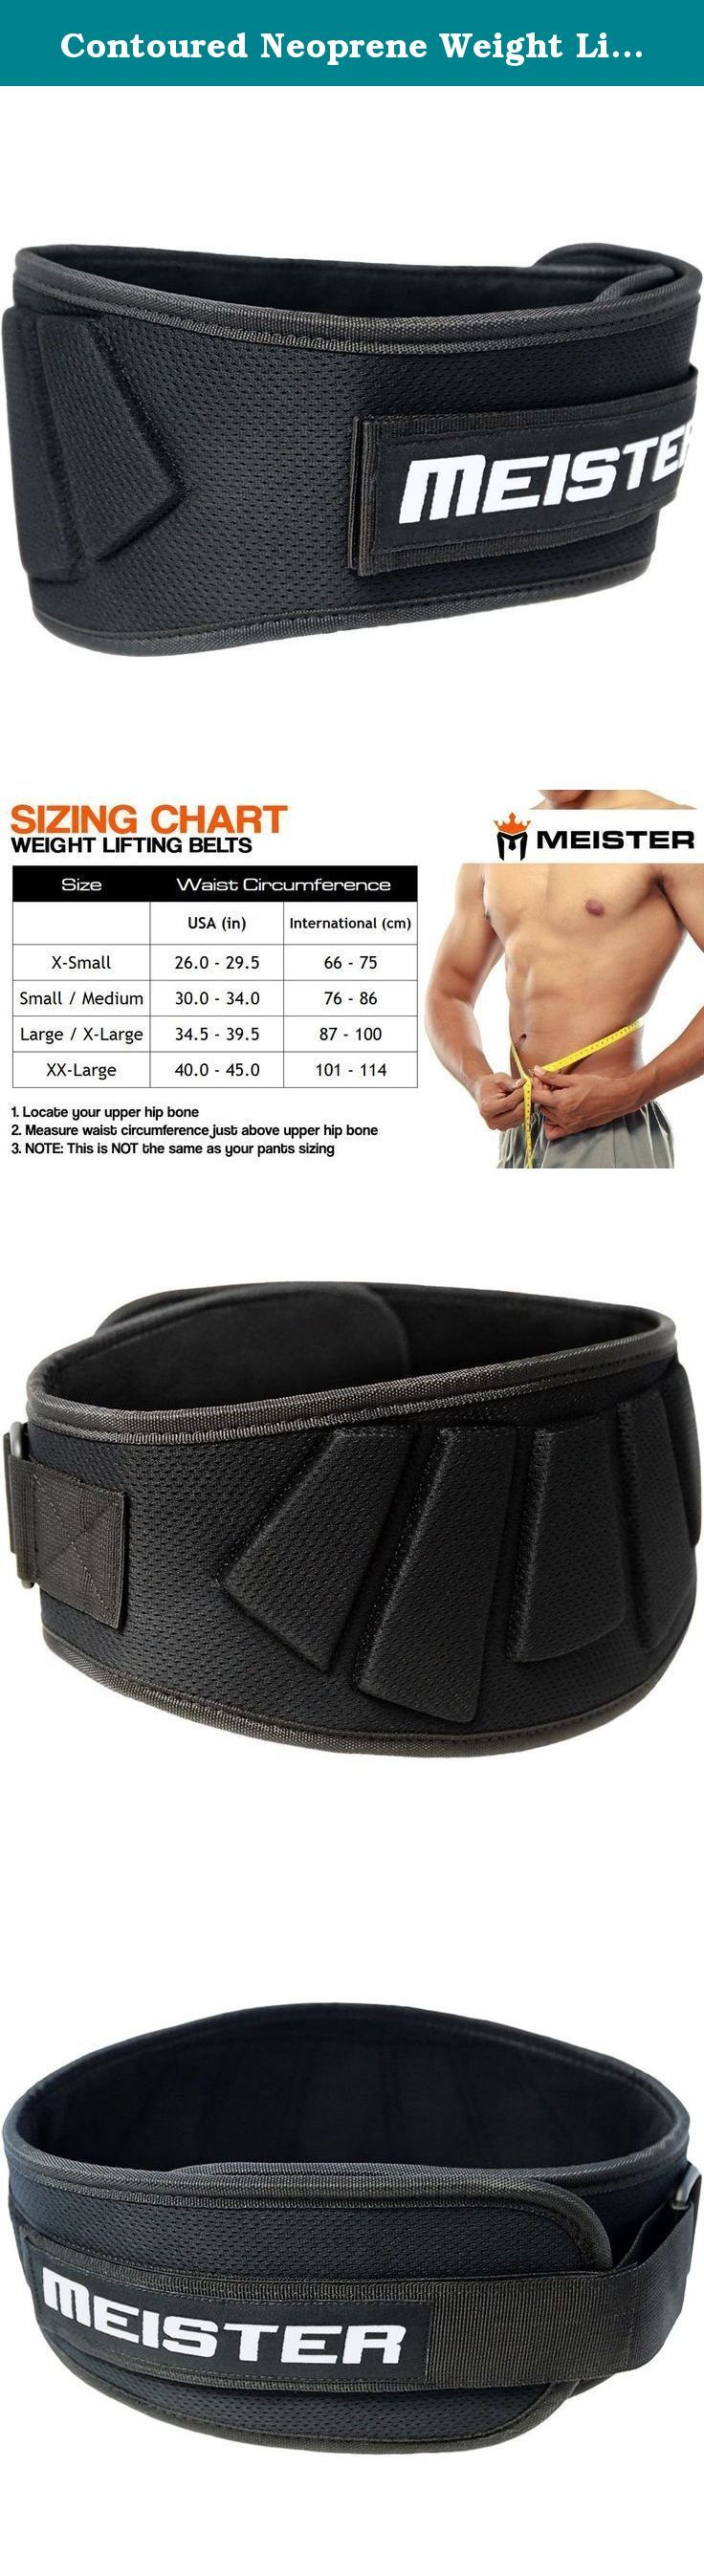 "Contoured Neoprene Weight Lifting Belt 6"" Back Support - Small/Medium. The Meister Neoprene Contoured Weight Lifting Belt is the perfect belt for anyone looking for both support and mobility. The neoprene body is light weight yet super-strong, an improvement over traditional leather belts. This Meister lifting belt's contoured design provides 6"" of back support where you need it most. The over-sized velcro strap and roller buckle keep the belt tight throughout your workout and allow for…"